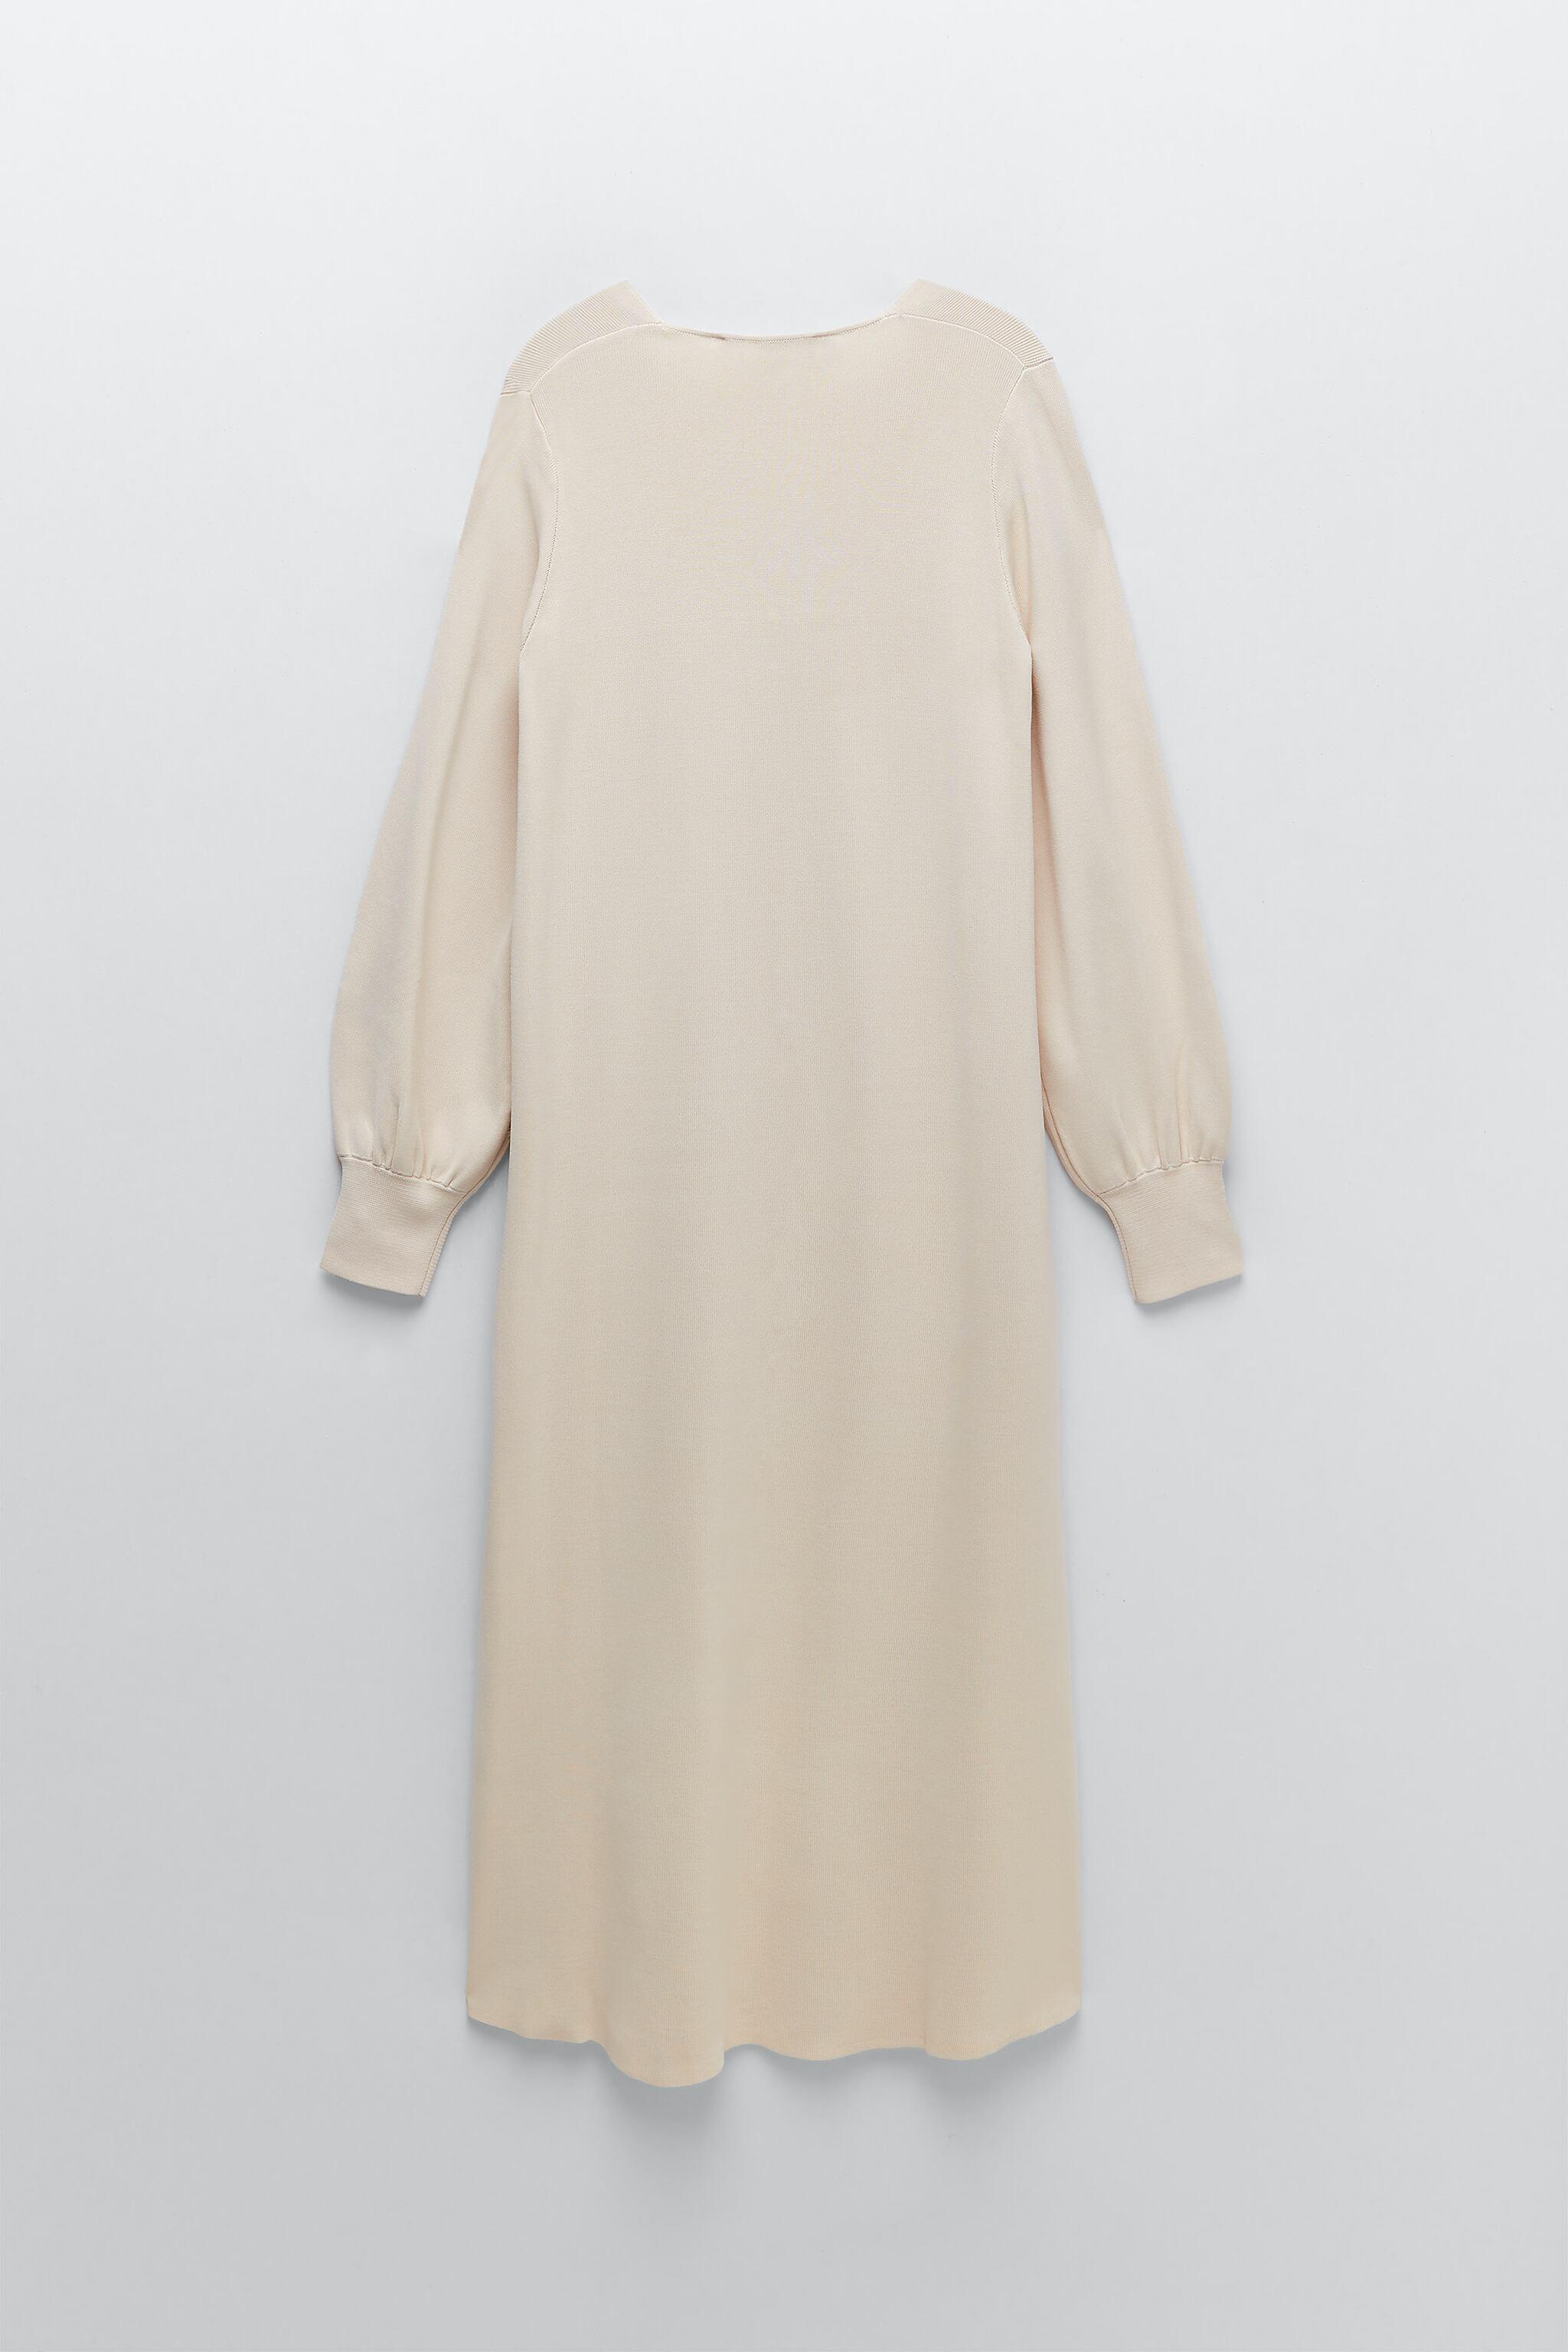 LIMITED EDITION BUTTONED KNIT DRESS 9